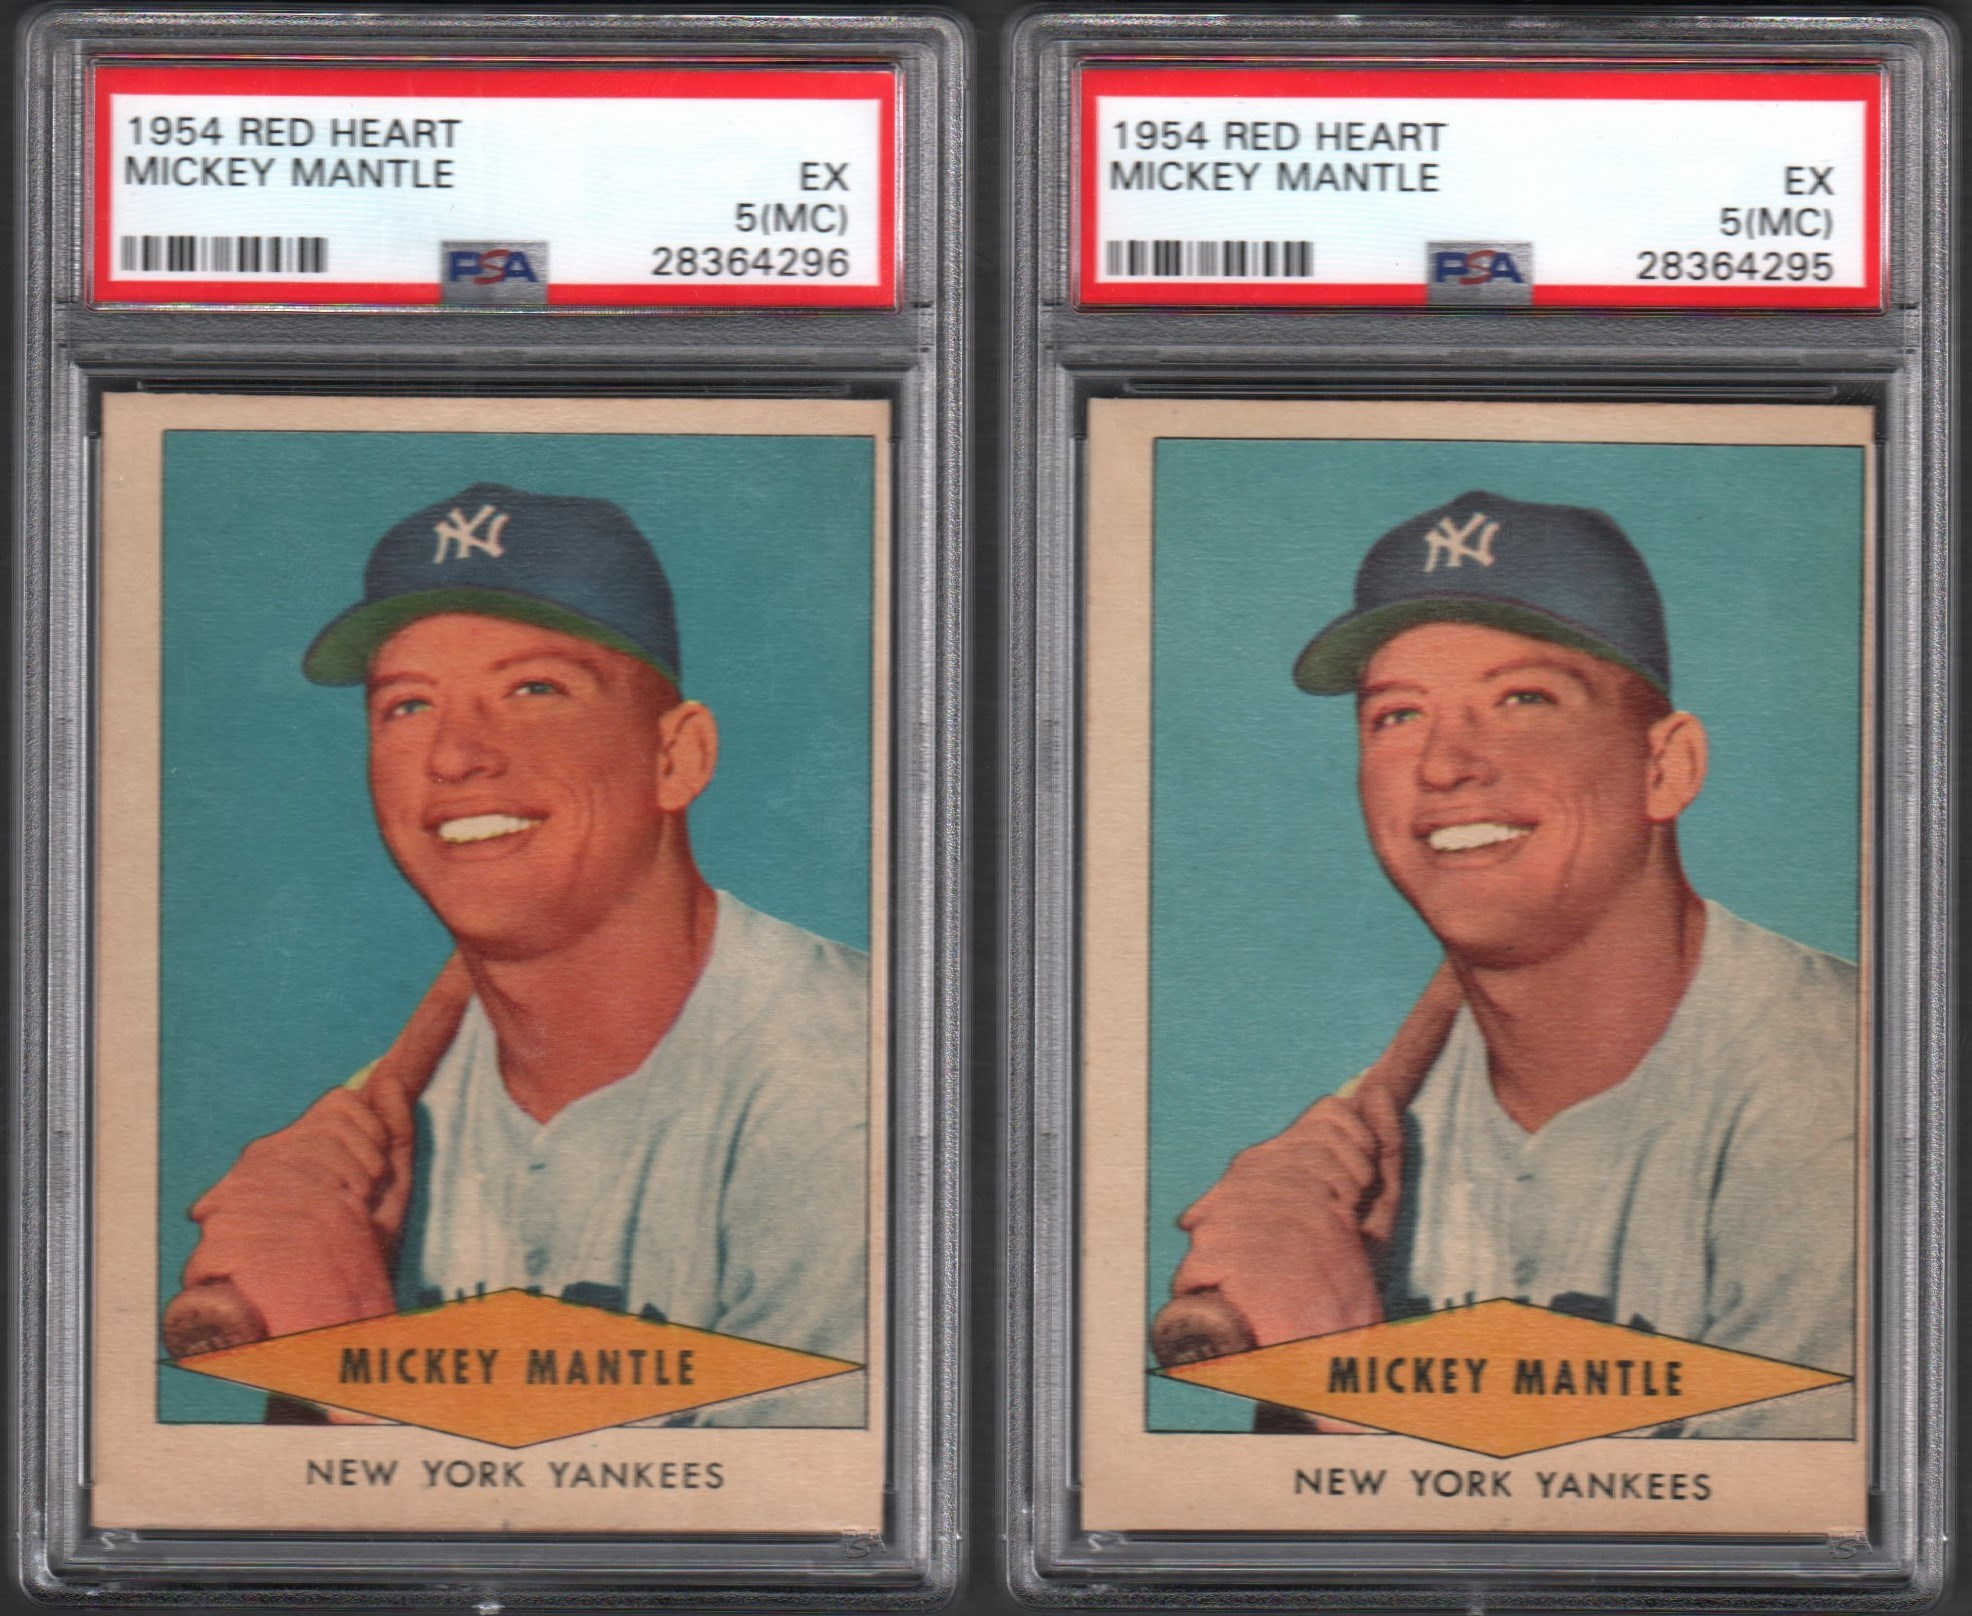 1954 Red Heart Mickey Mantle Pair of Cards